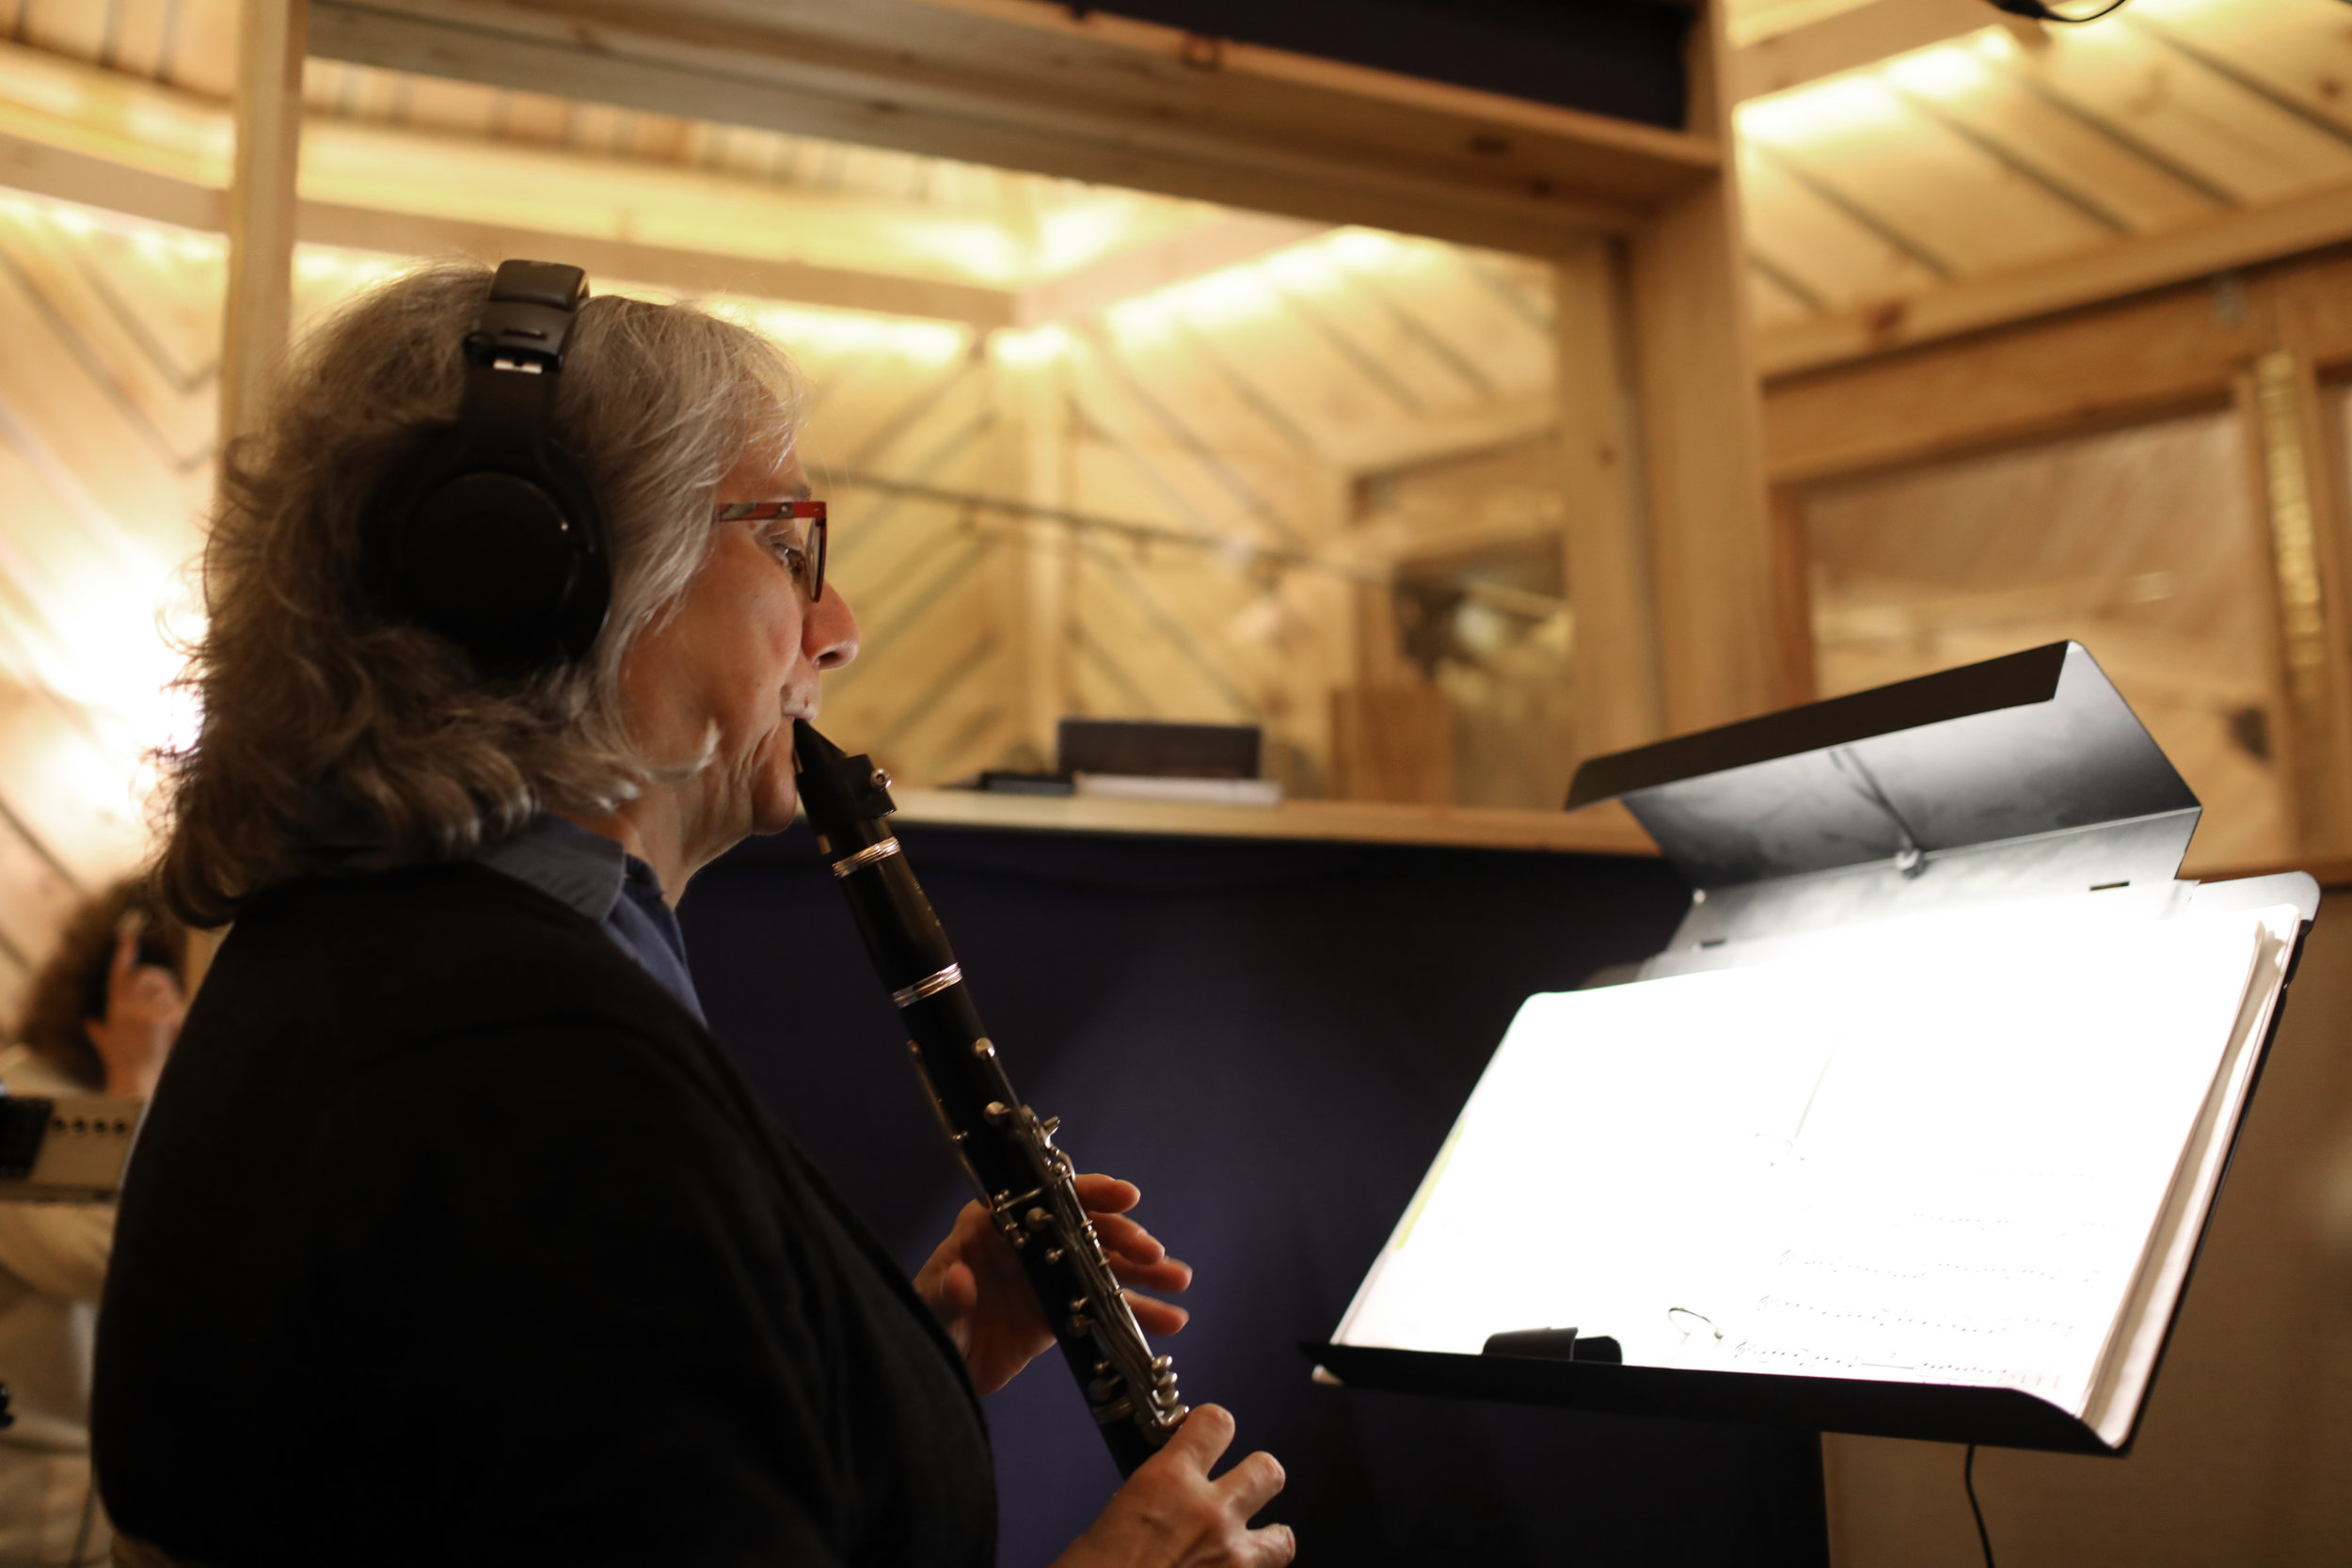 Laurie playing recording.jpg